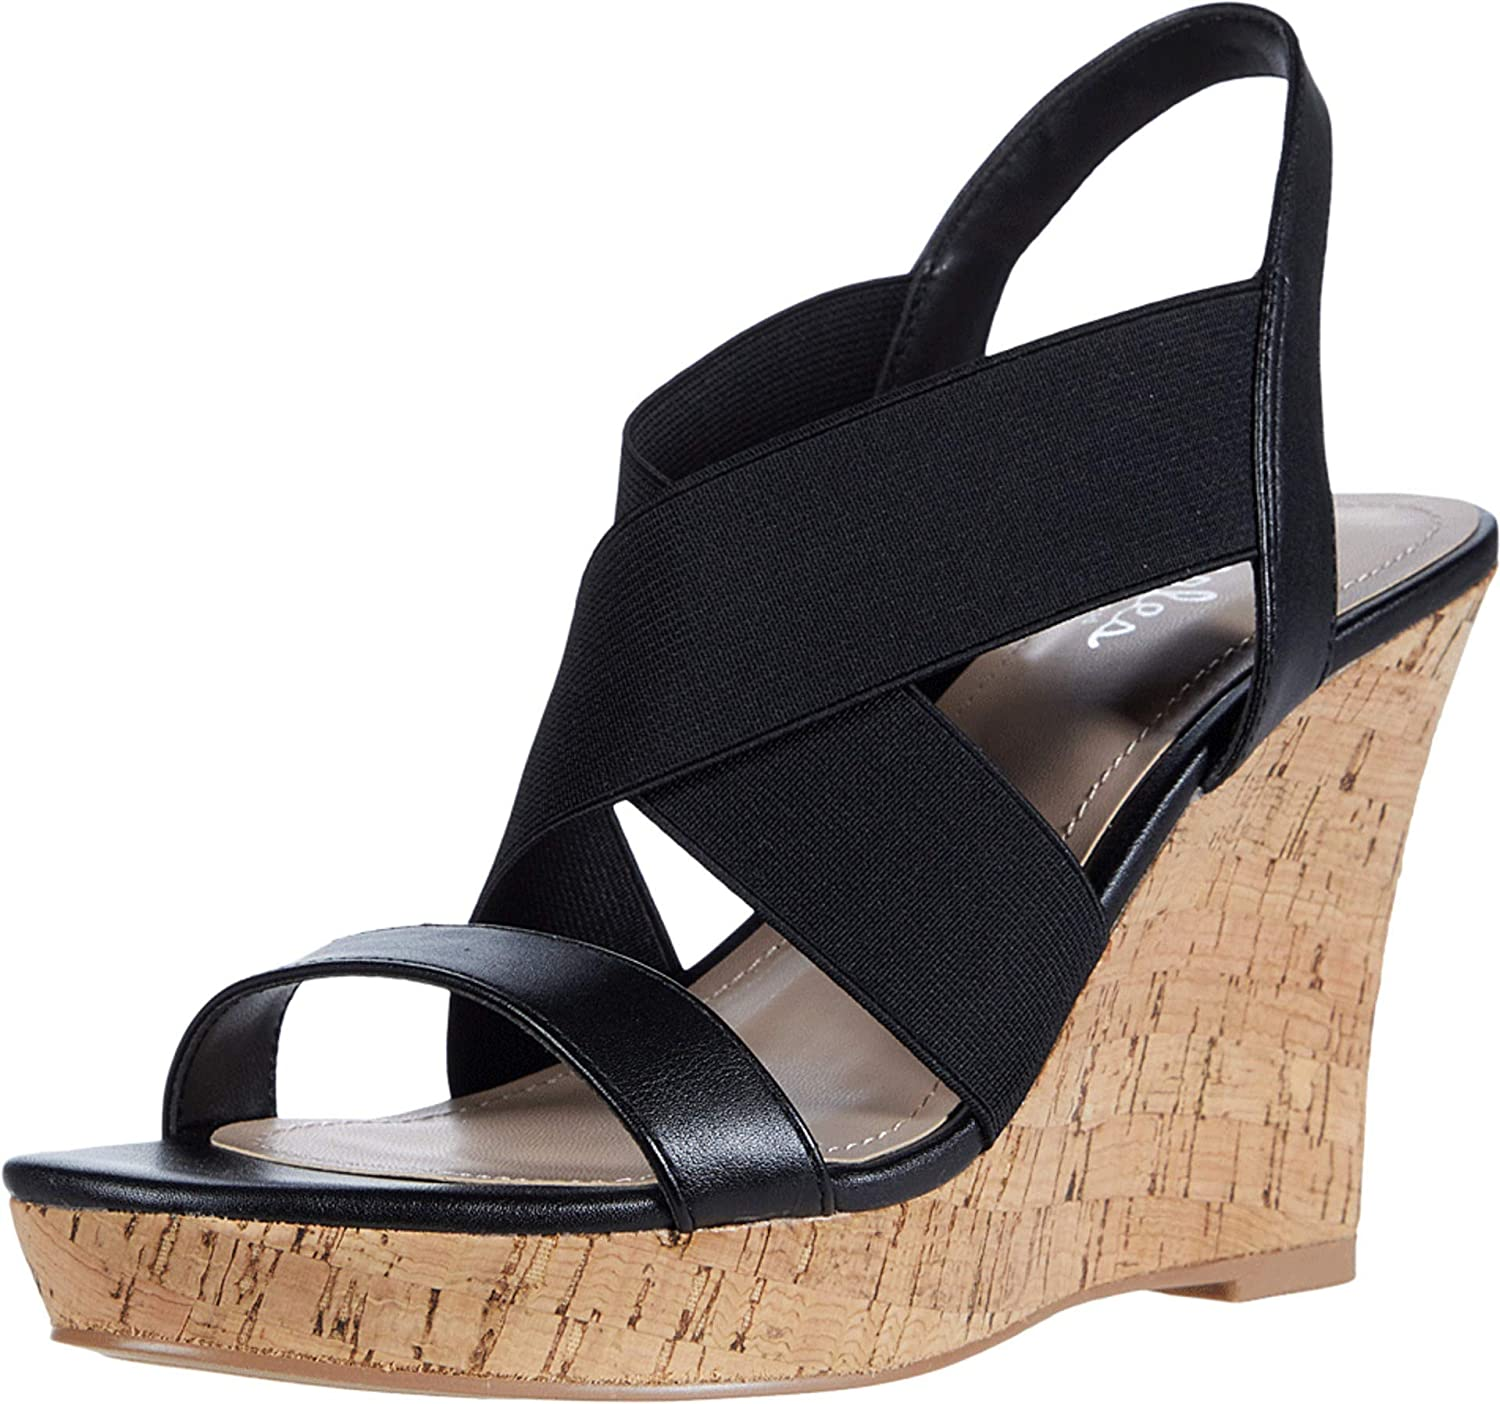 Charles by Gorgeous David Industry No. 1 Women's Platform Sandal Wedge